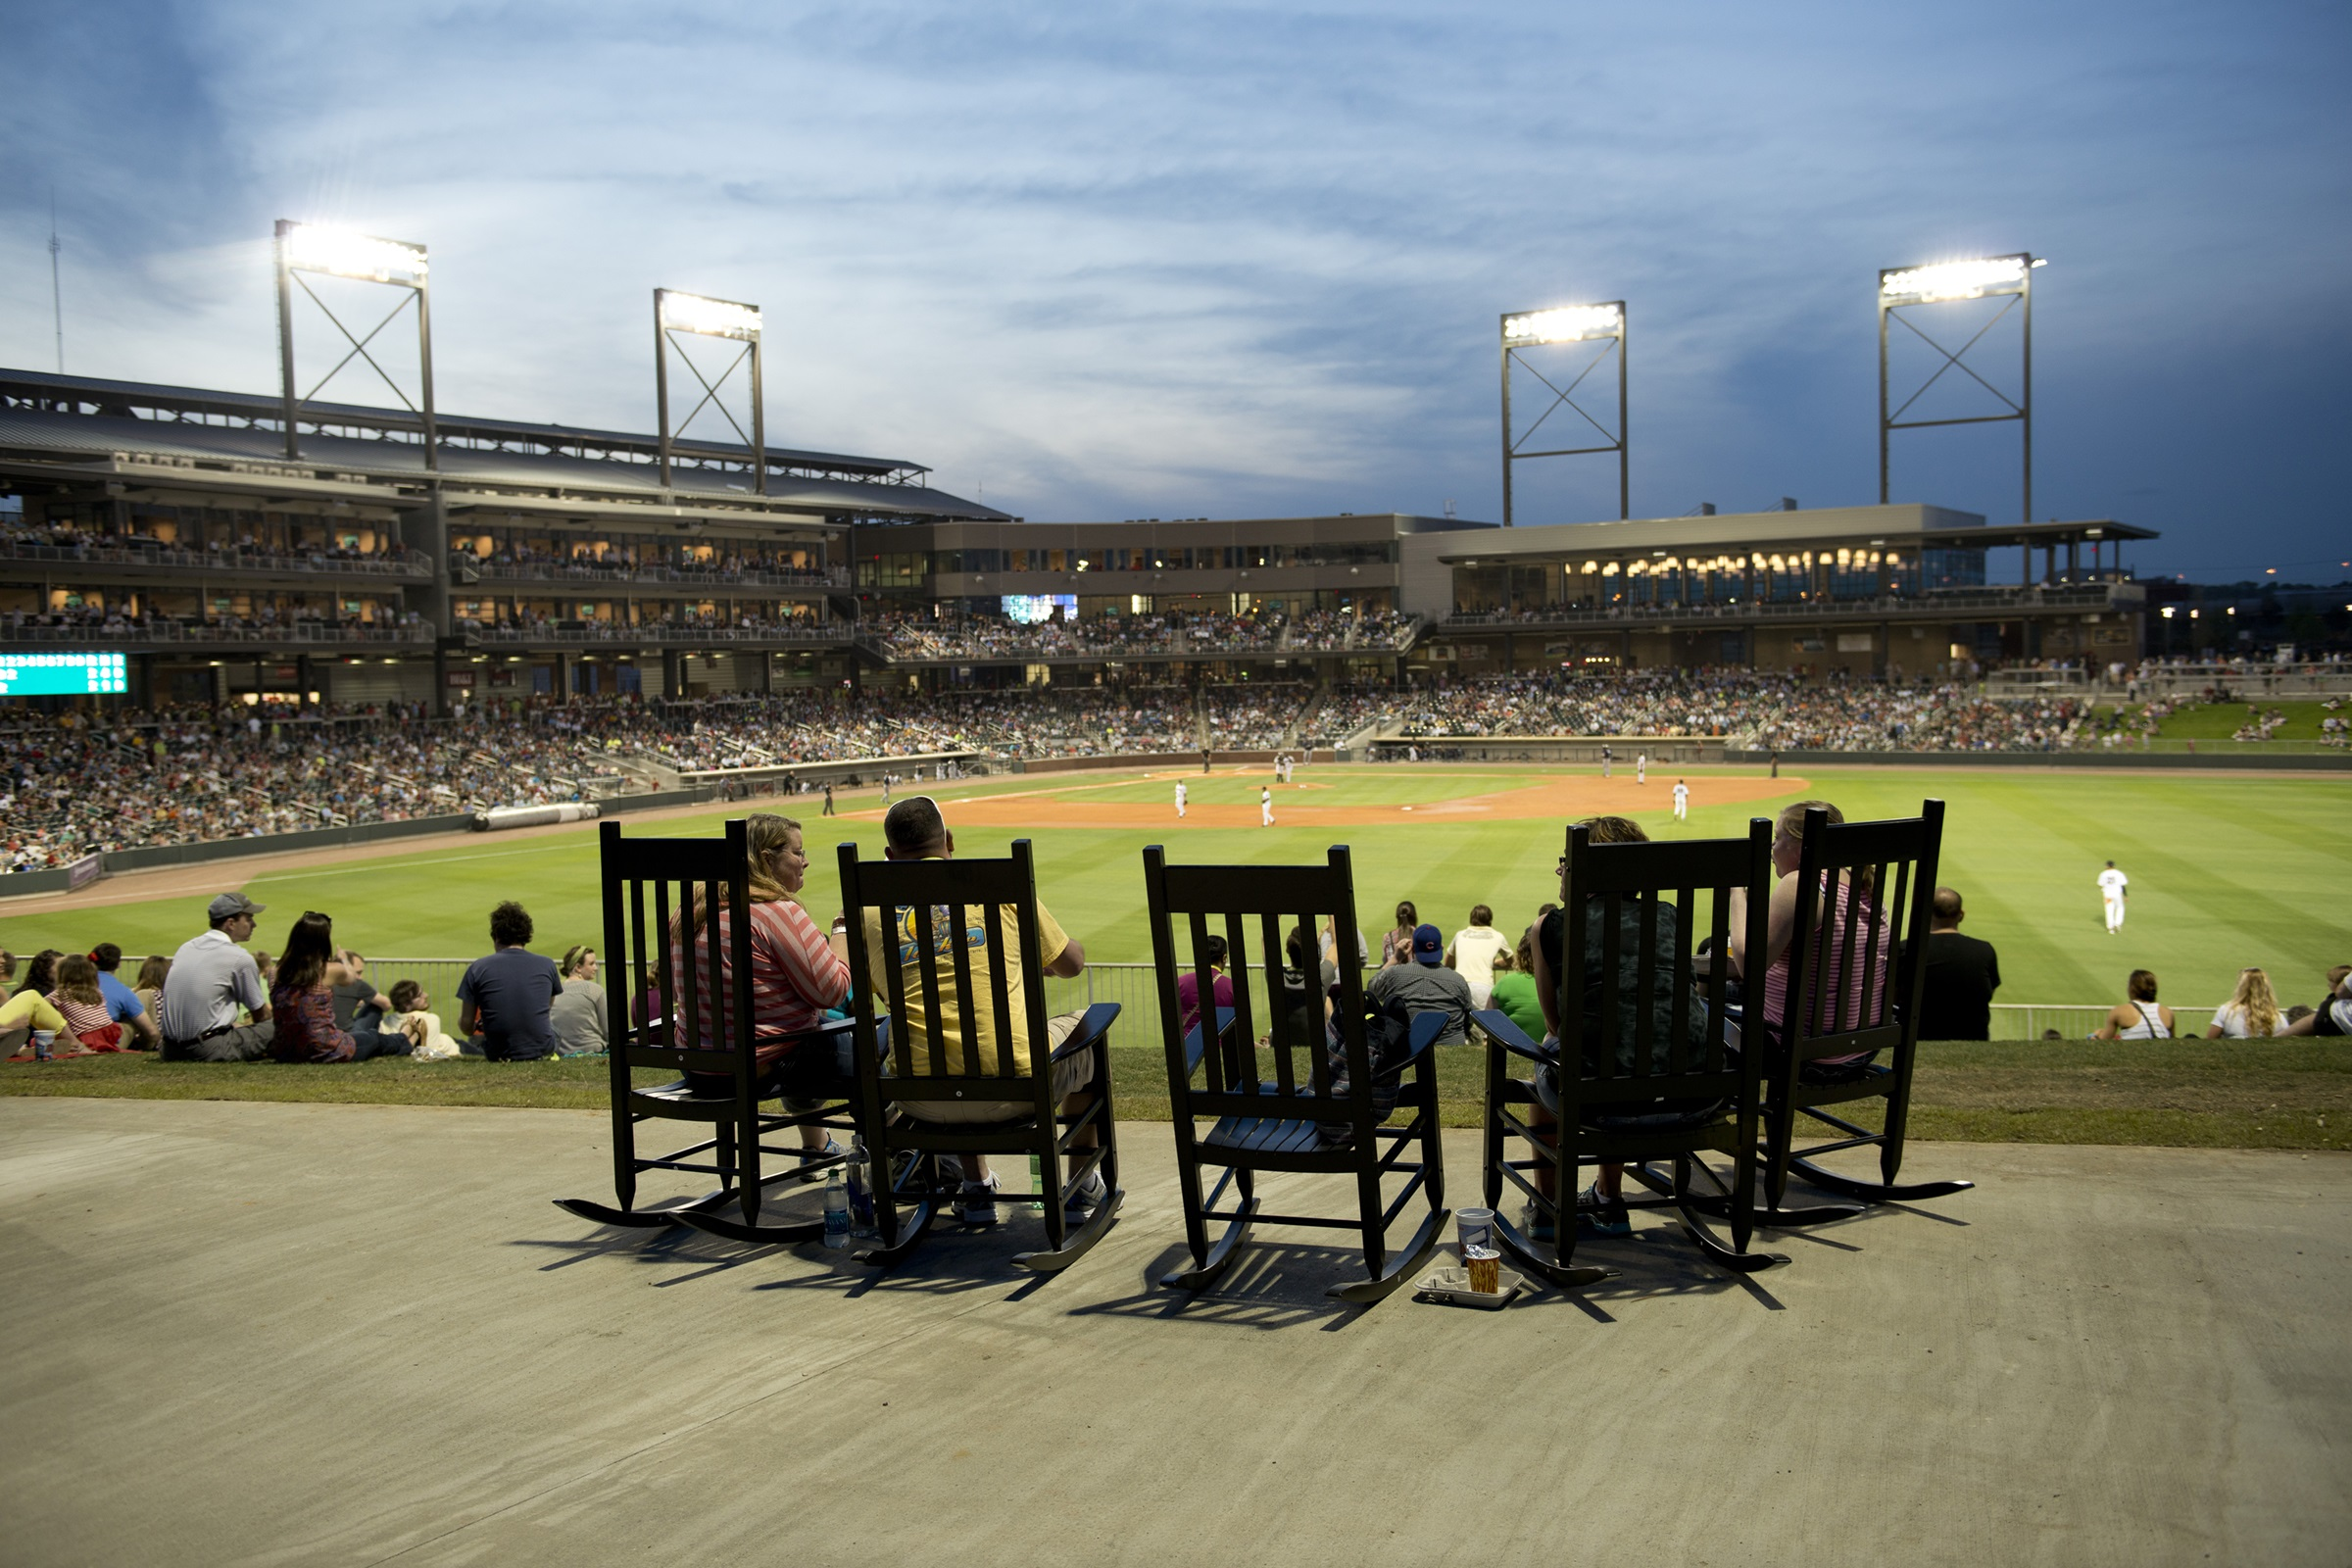 Regions Field was named one of Stadium Talk's Best Minor League Baseball Ballparks - one of eight accolades Birmingham has received just this month.